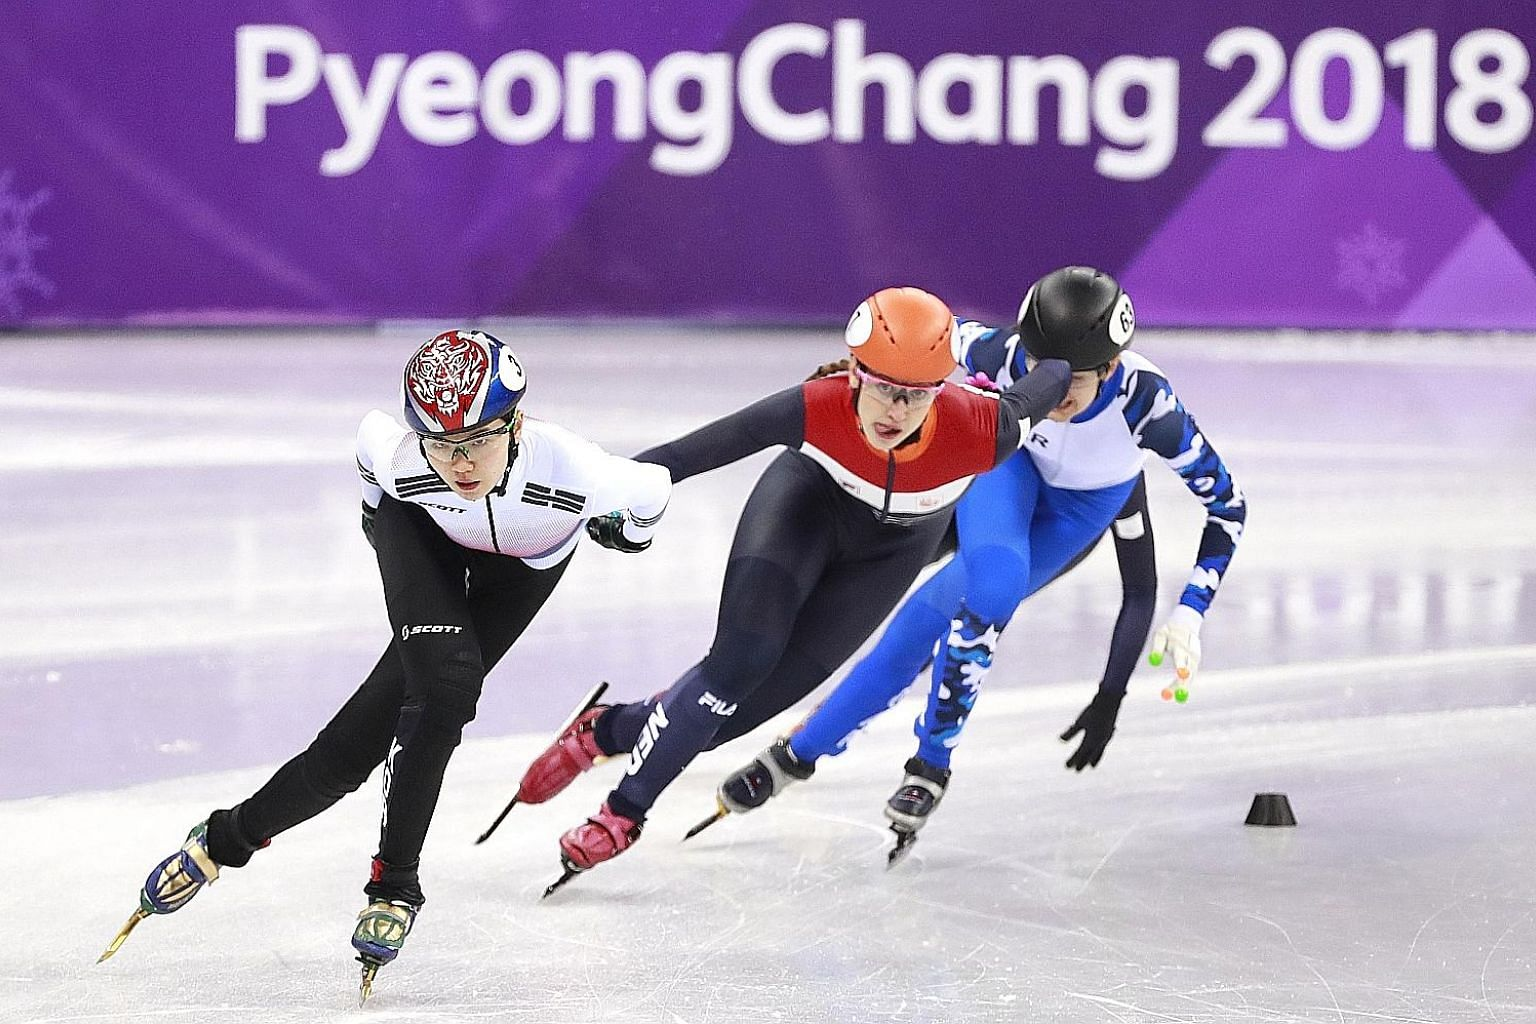 Shim Suk-hee (left) competing in the short track speed skating event at last year's Winter Games in Pyeongchang. The South Korean's accusation of sexual abuse against her coach led to his incarceration, while paving the way for more athletes with sim